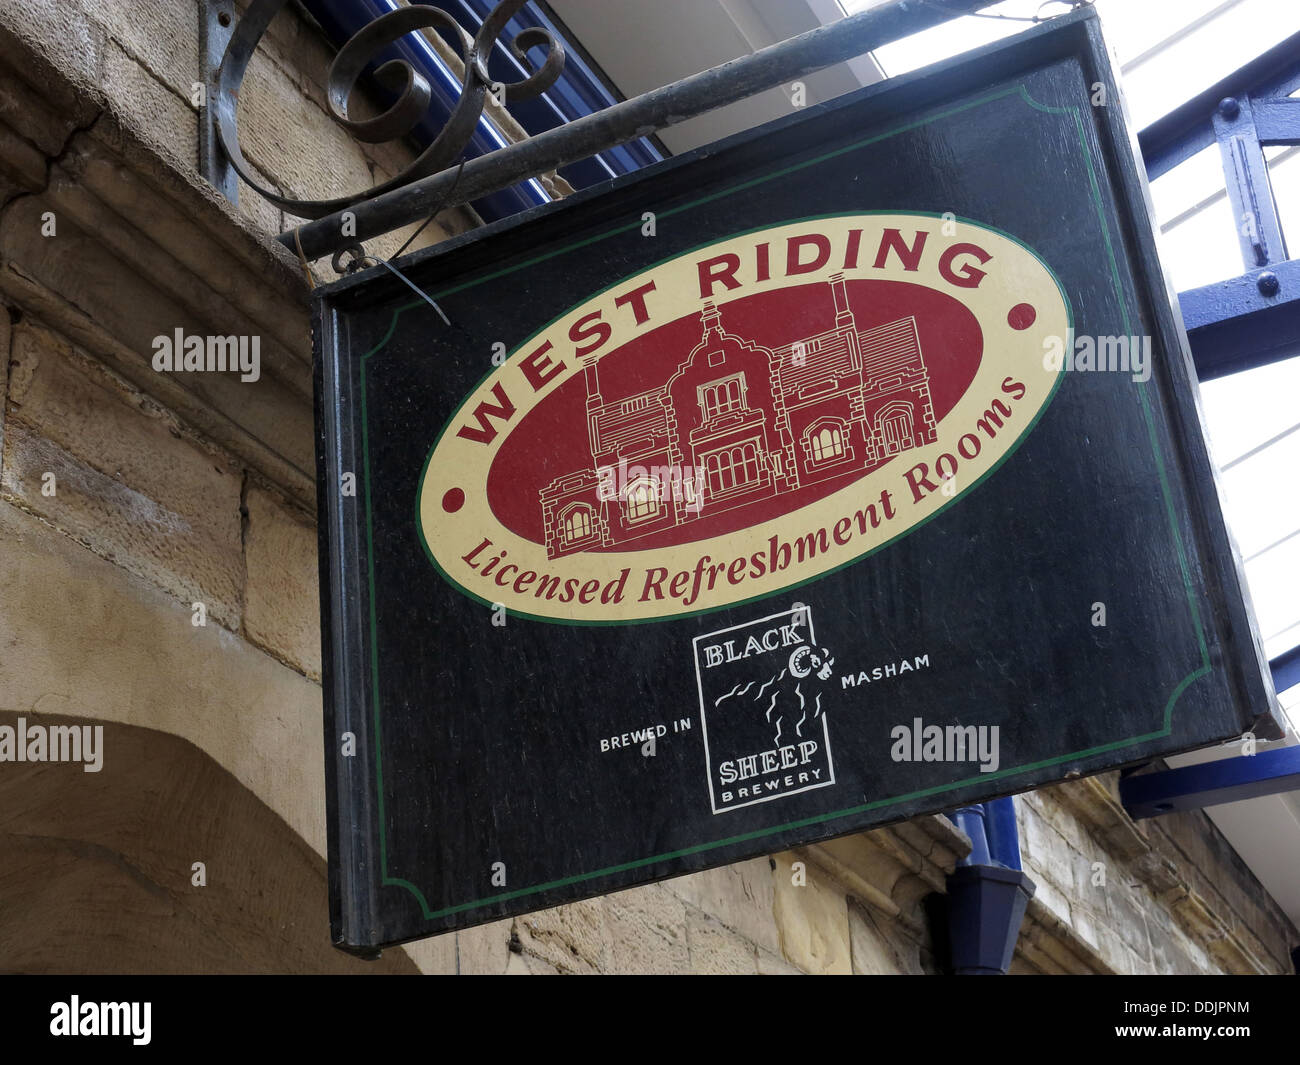 West Riding refreshment rooms Dewsbury sign, Station,West Yorkshire, England UK - Stock Image